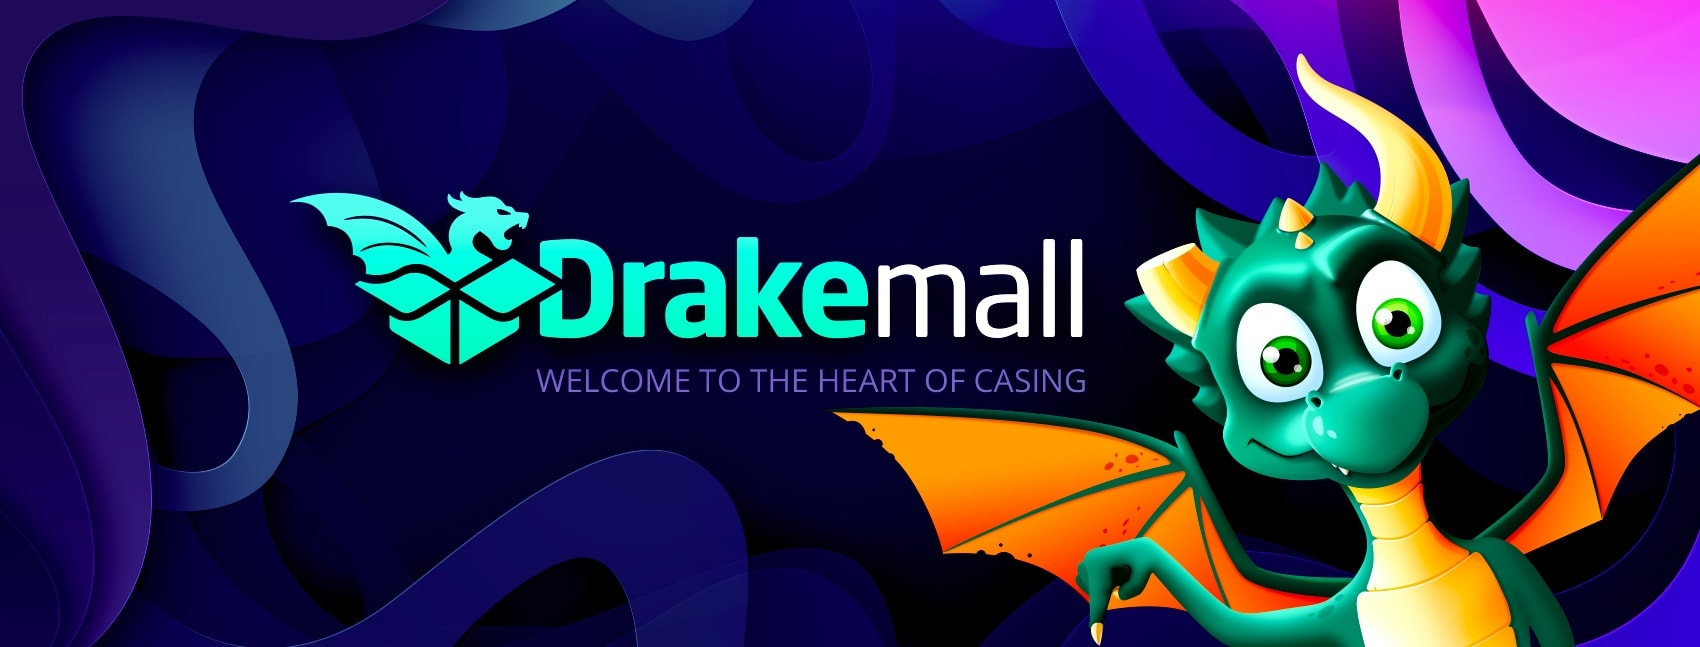 drakemall-mystery-box-website-review-min